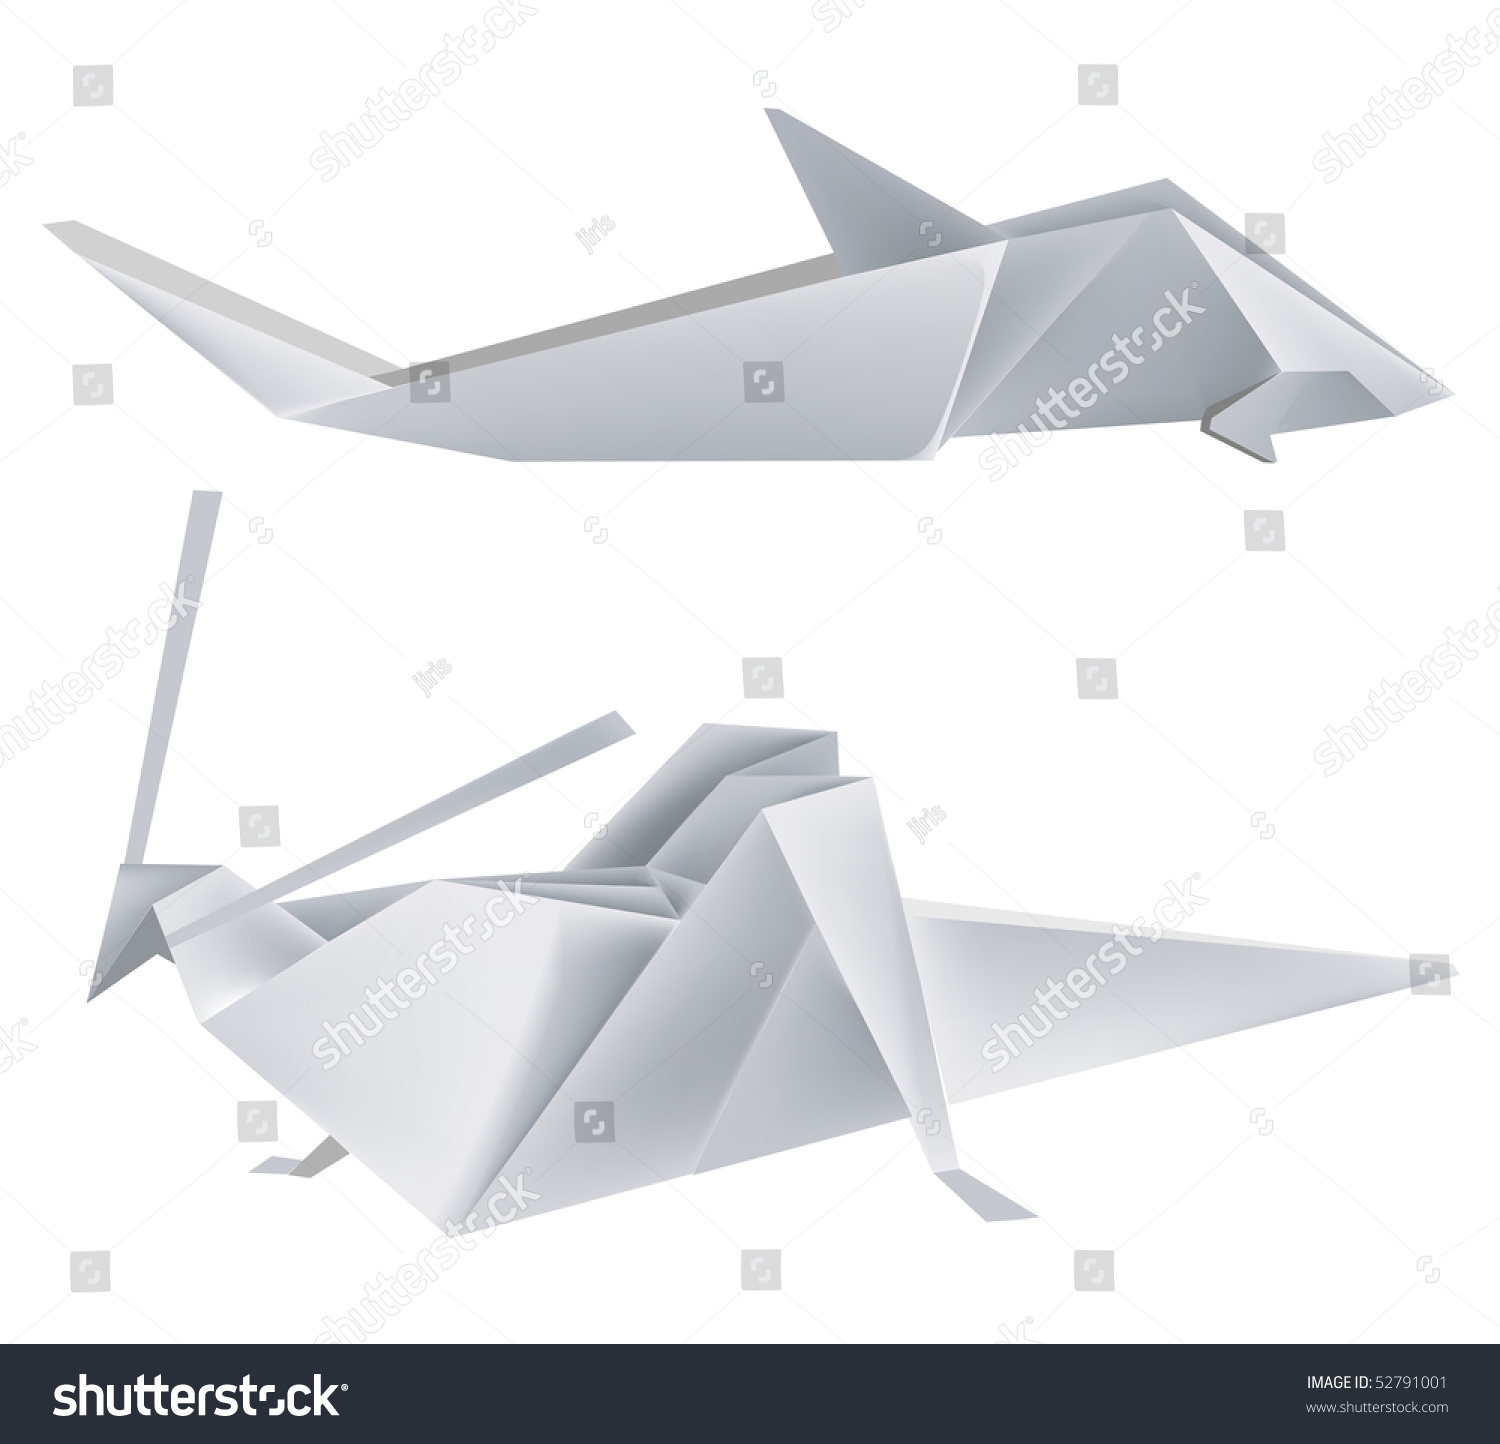 illustration of folded paper models grasshopper and shark save to a lightbox